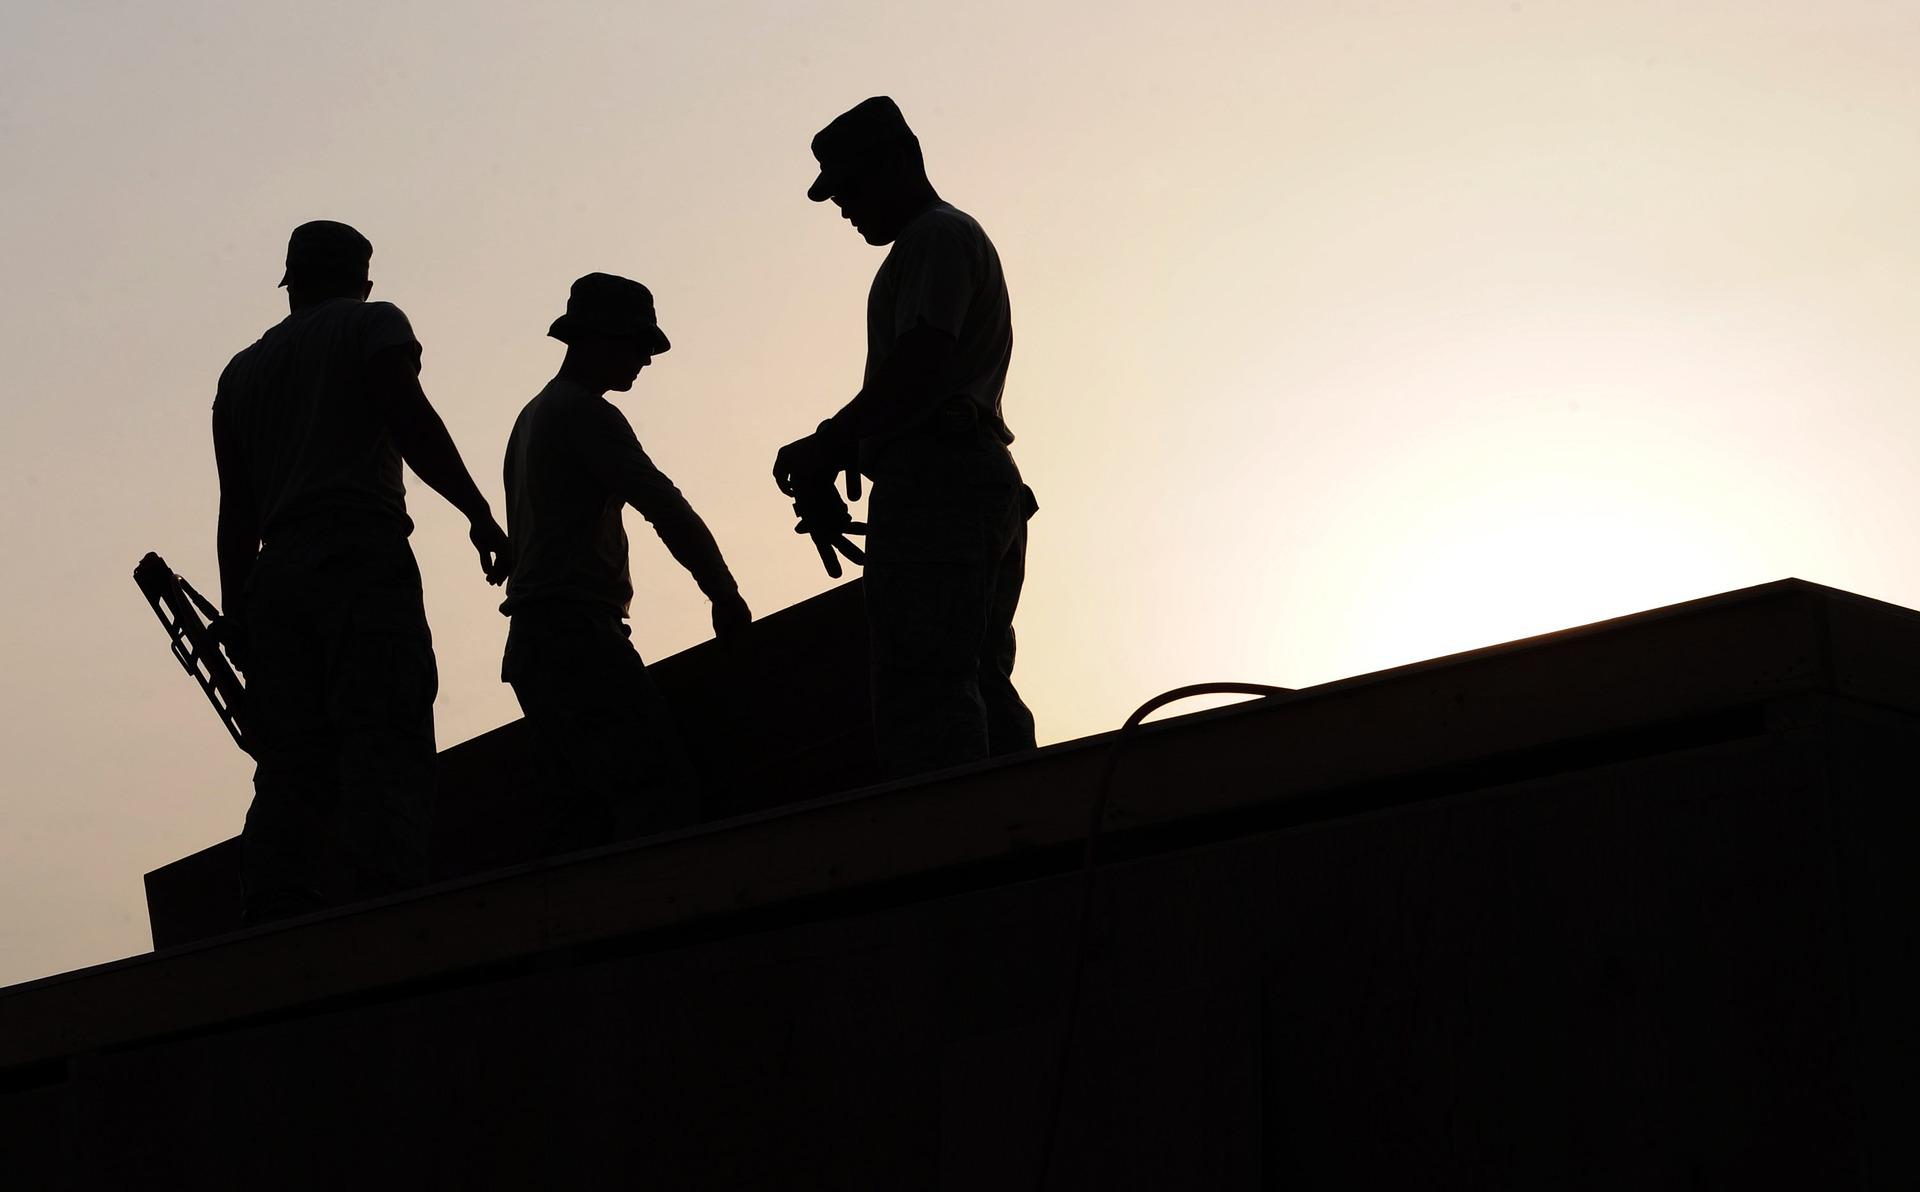 workers-659885_1920